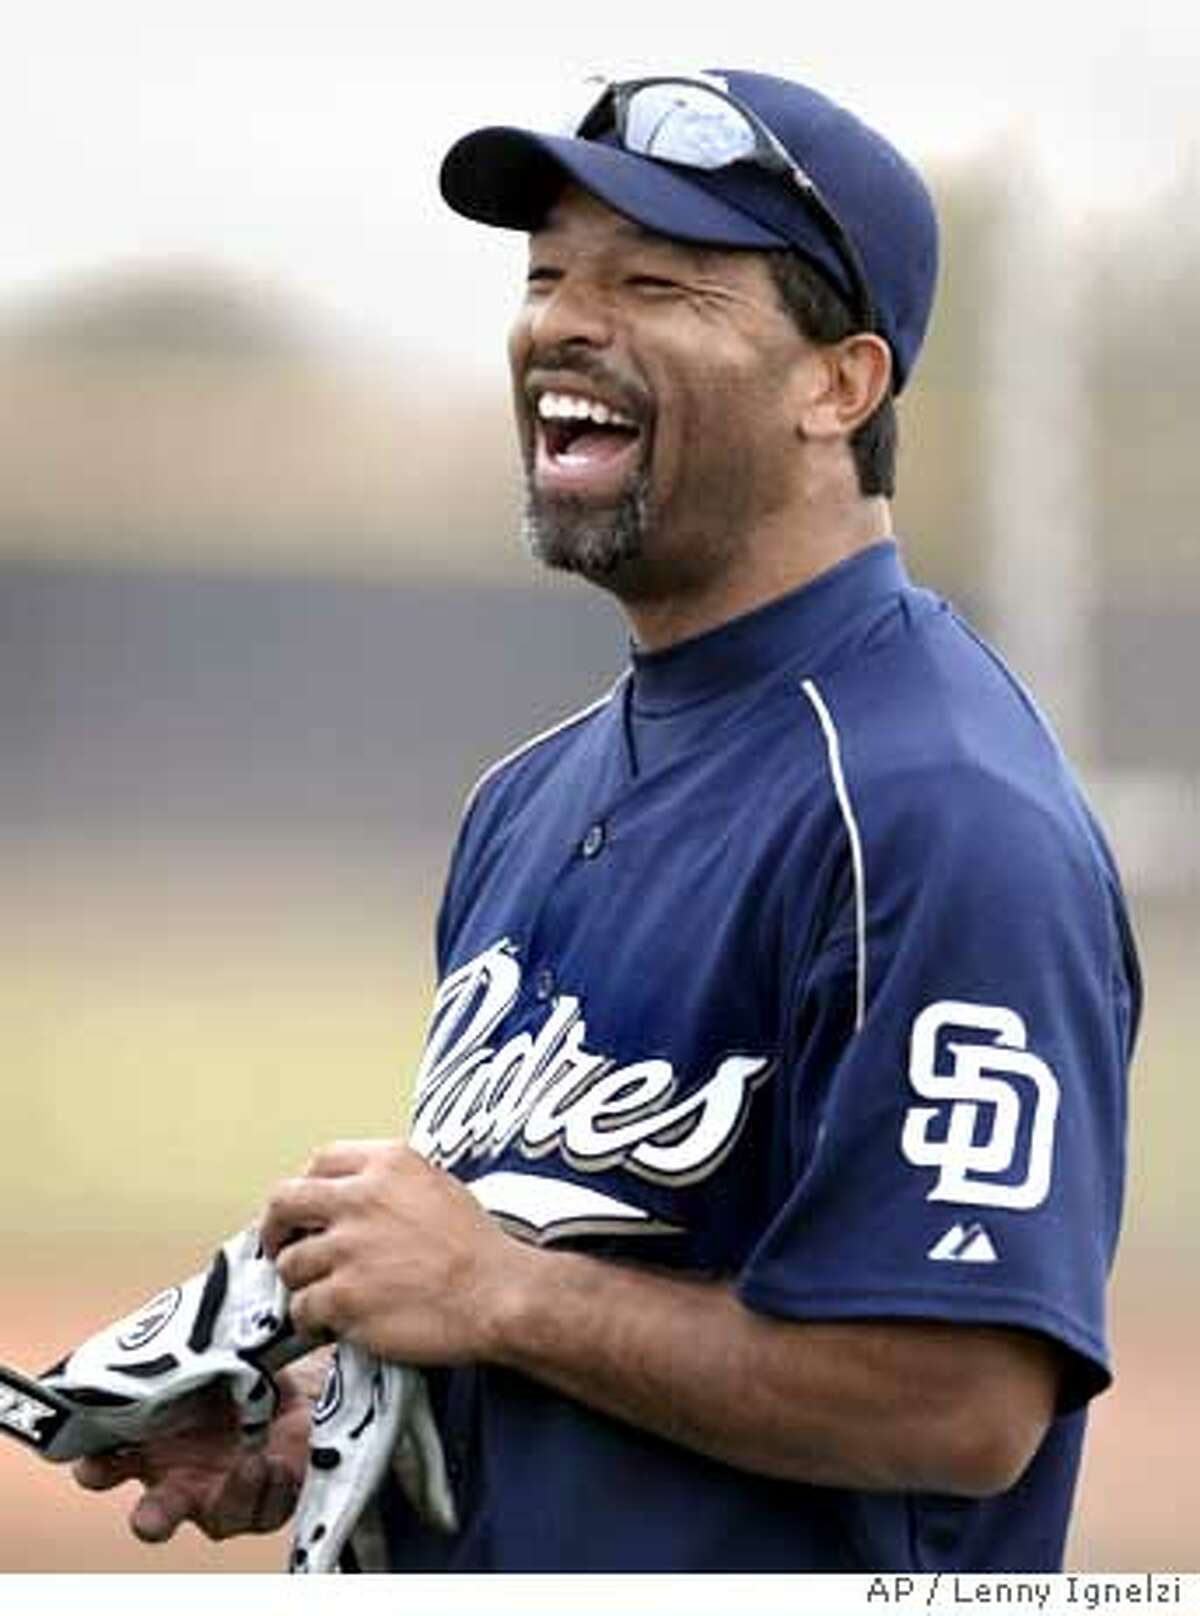 San Diego Padres centerfielder Dave Roberts smiles during workouts at the teams' spring training camp Friday, March 18, 2005, in Peoria, Ariz. The Padres expect Roberts to cover the spacious PETCO Park outfield and to be the leadoff hitter they have lacked. (AP Photo/Lenny Ignelzi) Ran on: 03-27-2005 The Padres expect Dave Roberts to cover center field in spacious PETCO Park and to be the leadoff hitter they have lacked. Ran on: 11-25-2006 Rich Aurilia Ran on: 11-25-2006 Rich Aurilia